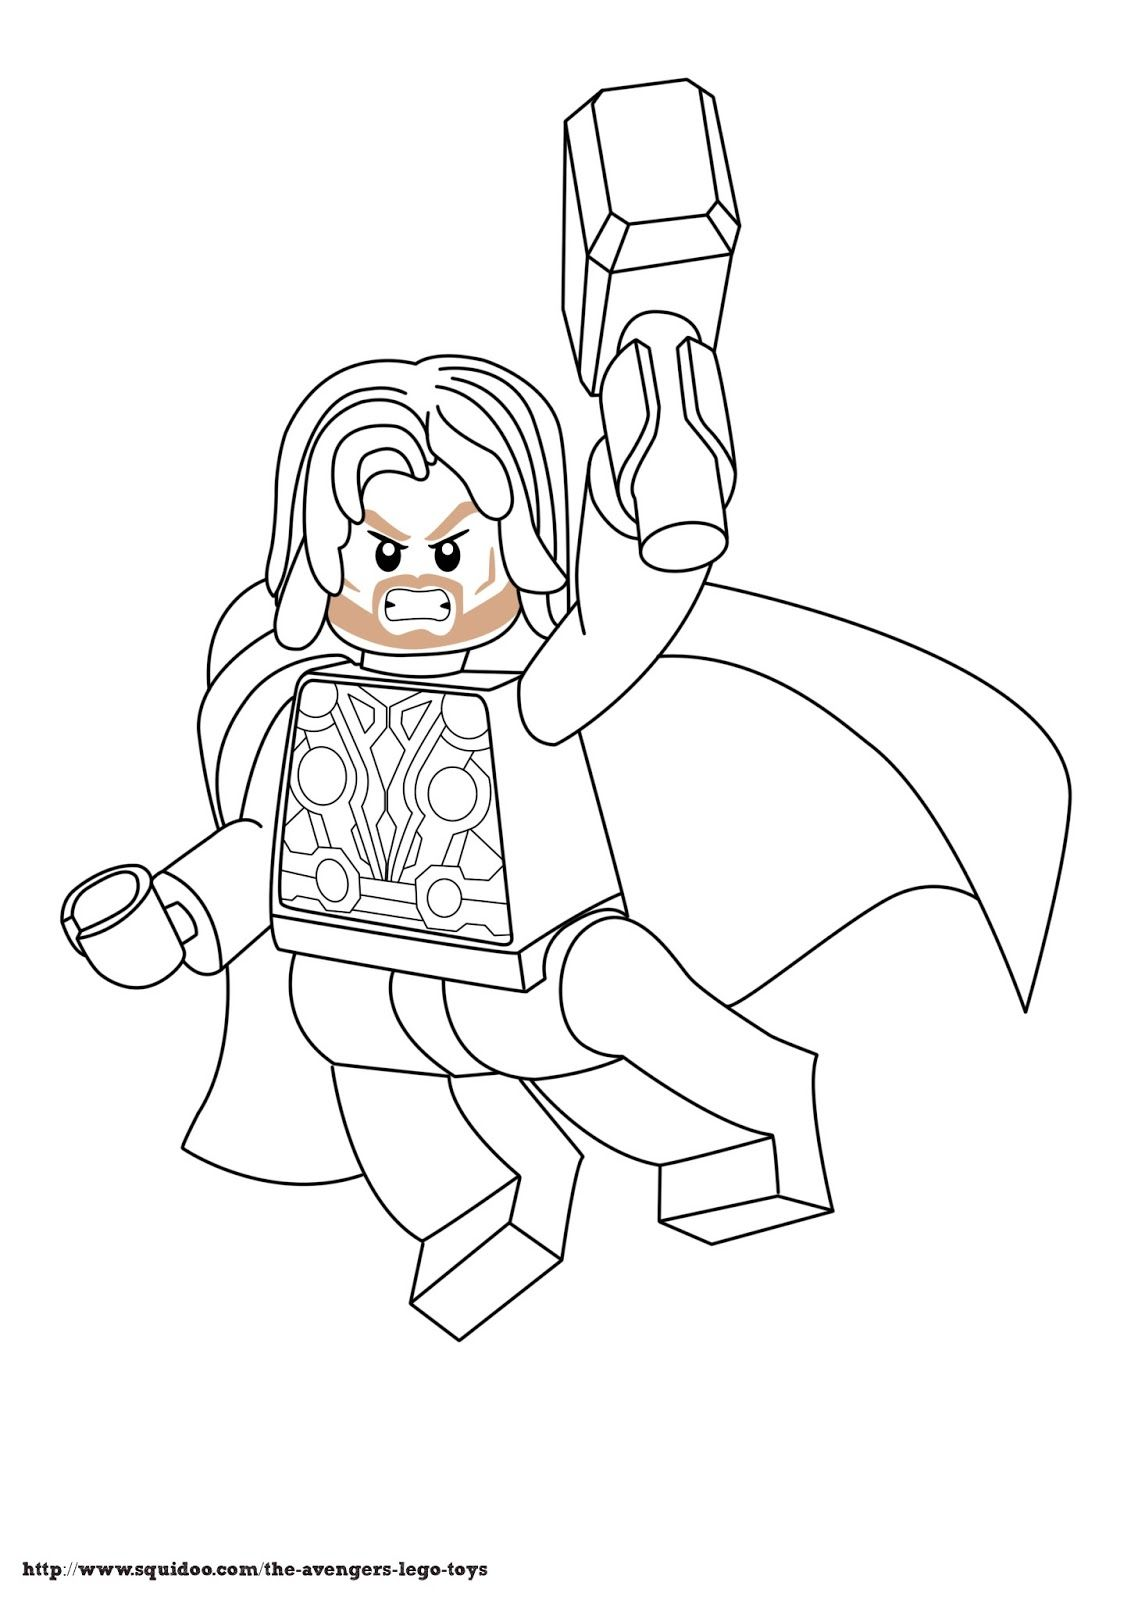 Famous Lego Hawkeye Coloring Pages Gallery - Documentation Template ...